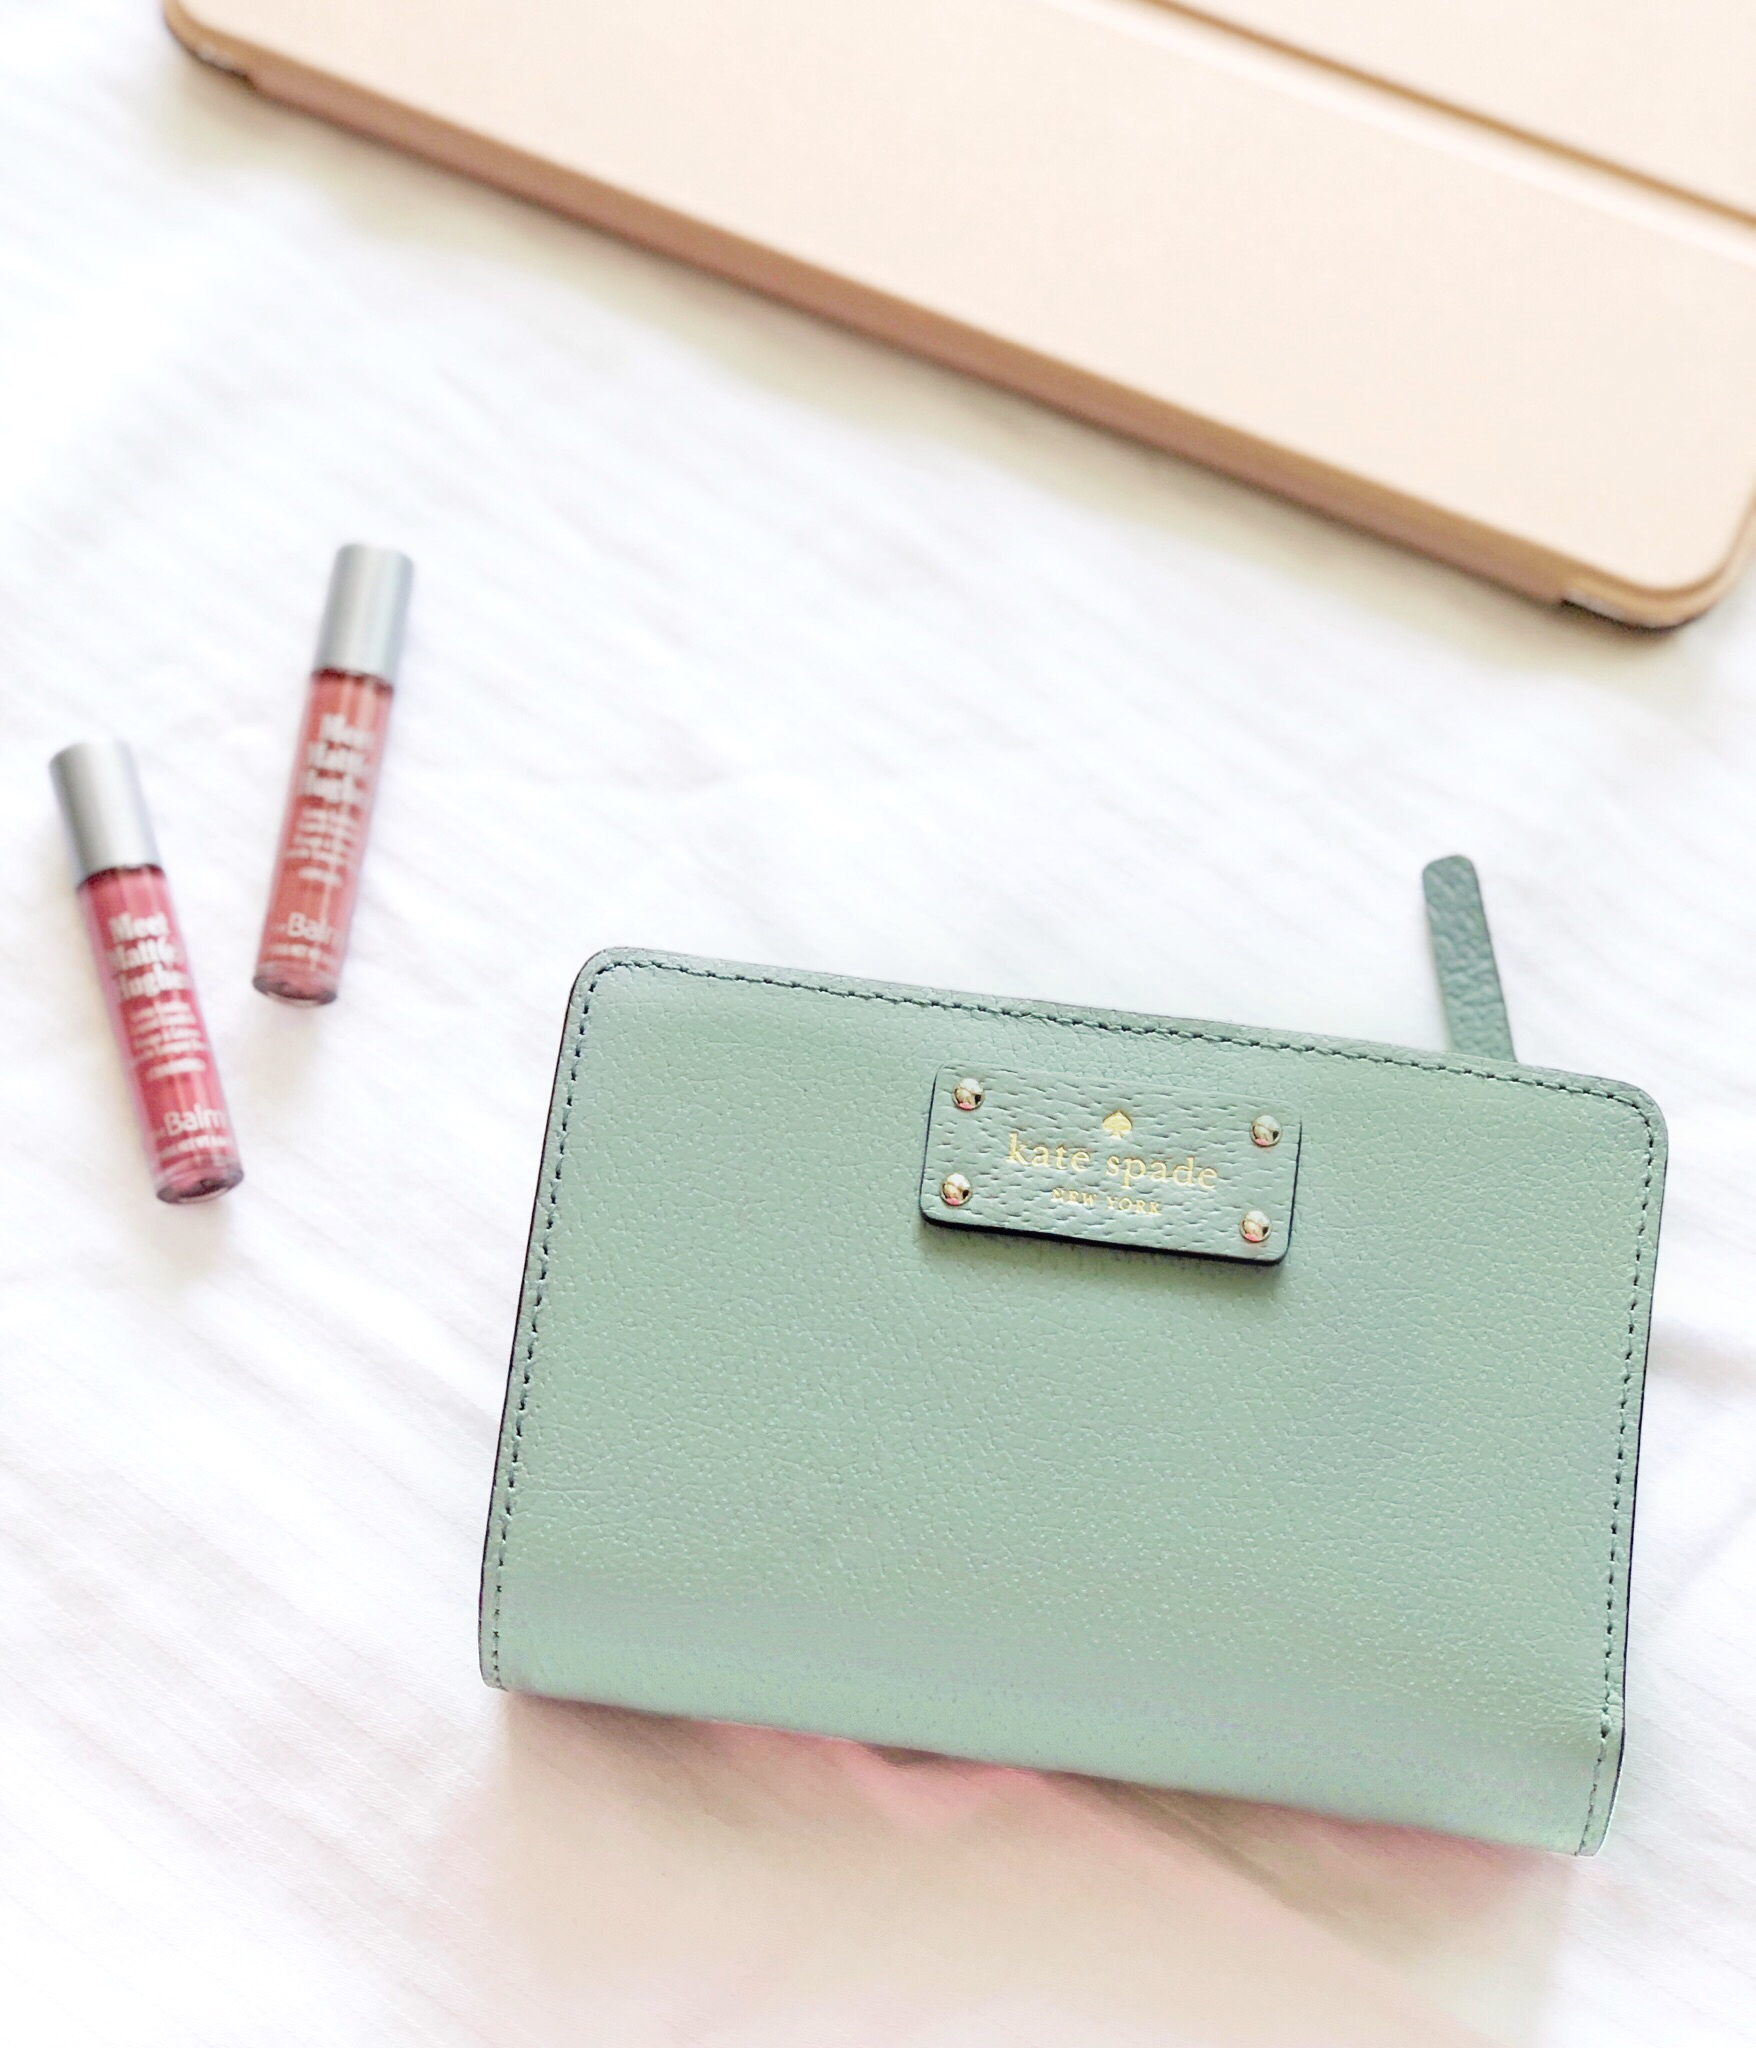 Pictured:  Kate Spade Wallet ,  Meet Matt(e) Hughes Lipstick,   Moko iPad Case  *the exact wallet pictured is no longer in stock - I linked a similar one.